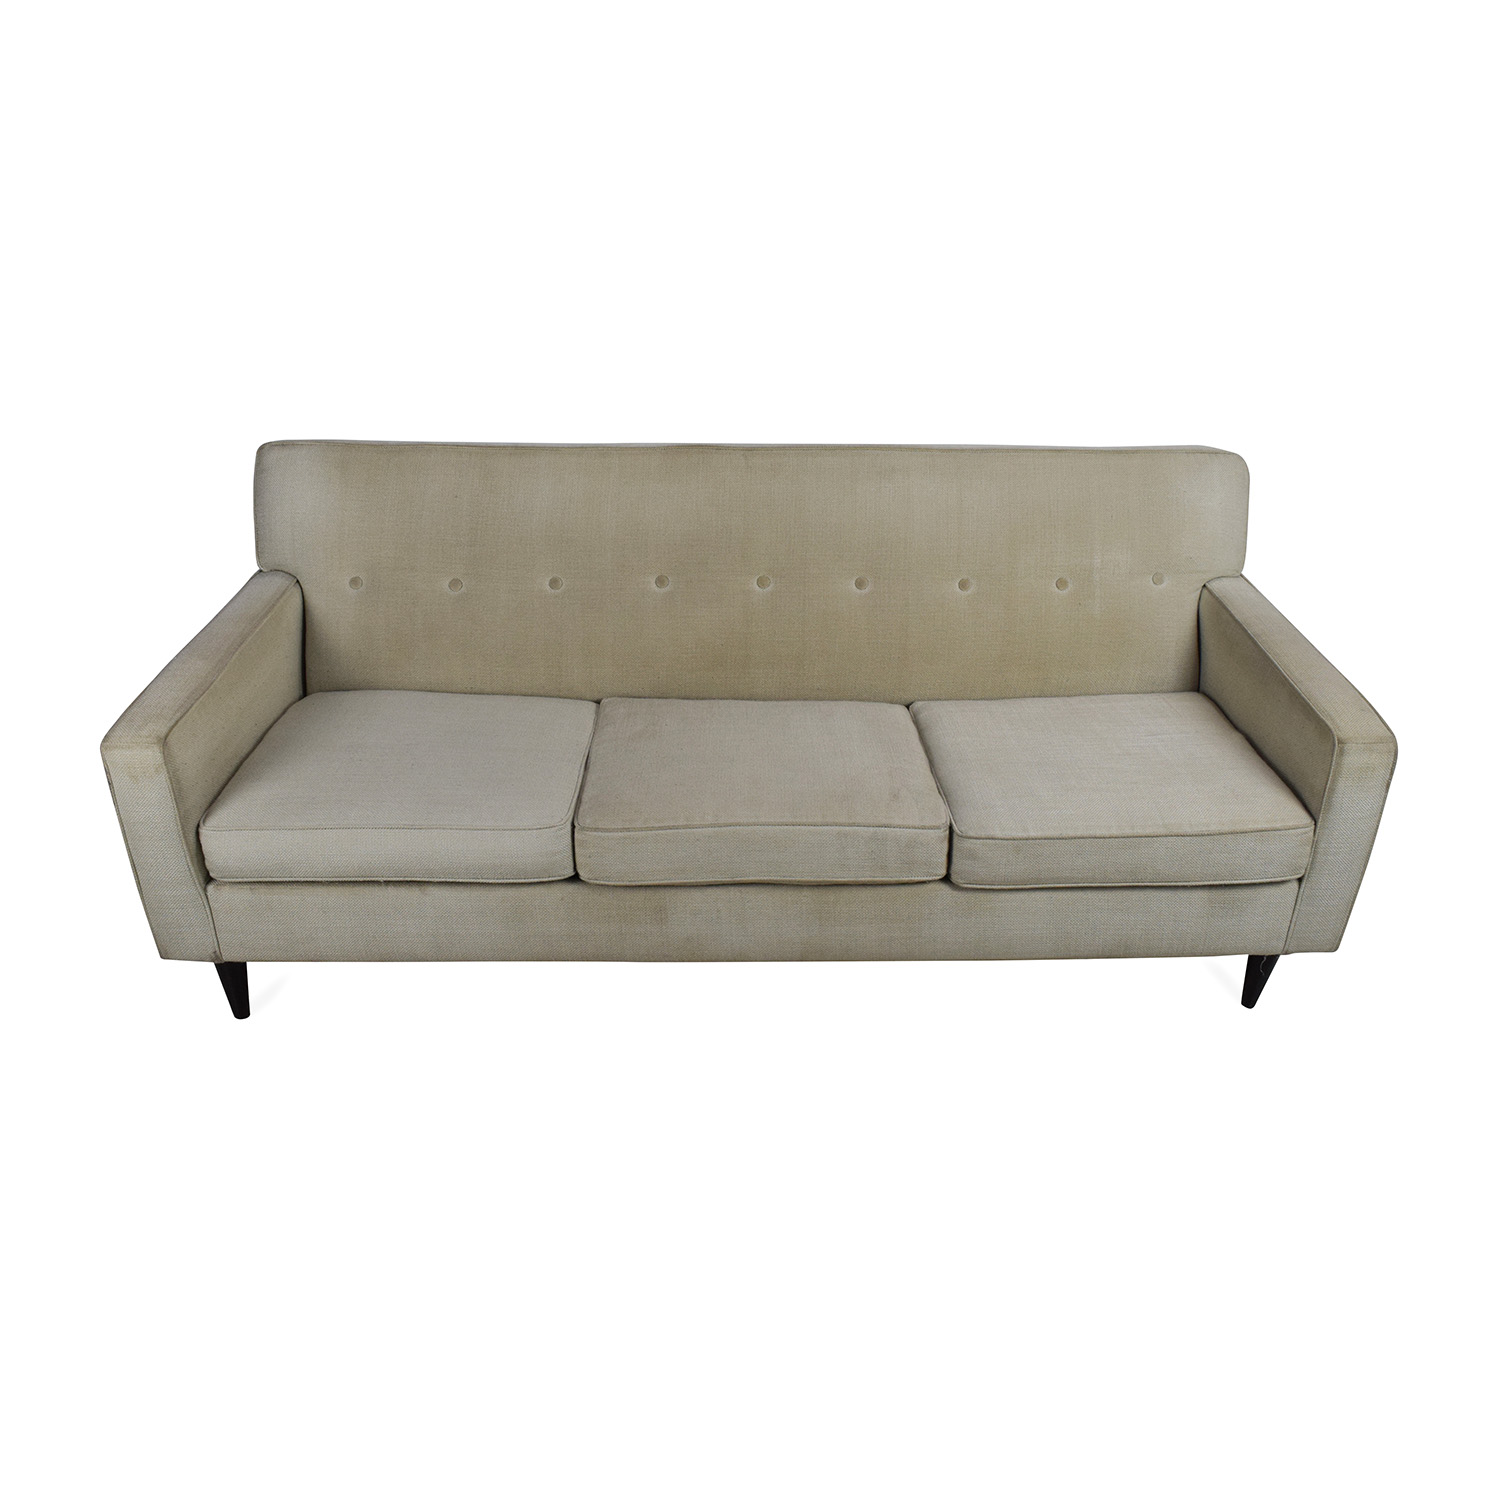 who sells sofas billy bobs sofa macy ainsley fabric only at s furniture